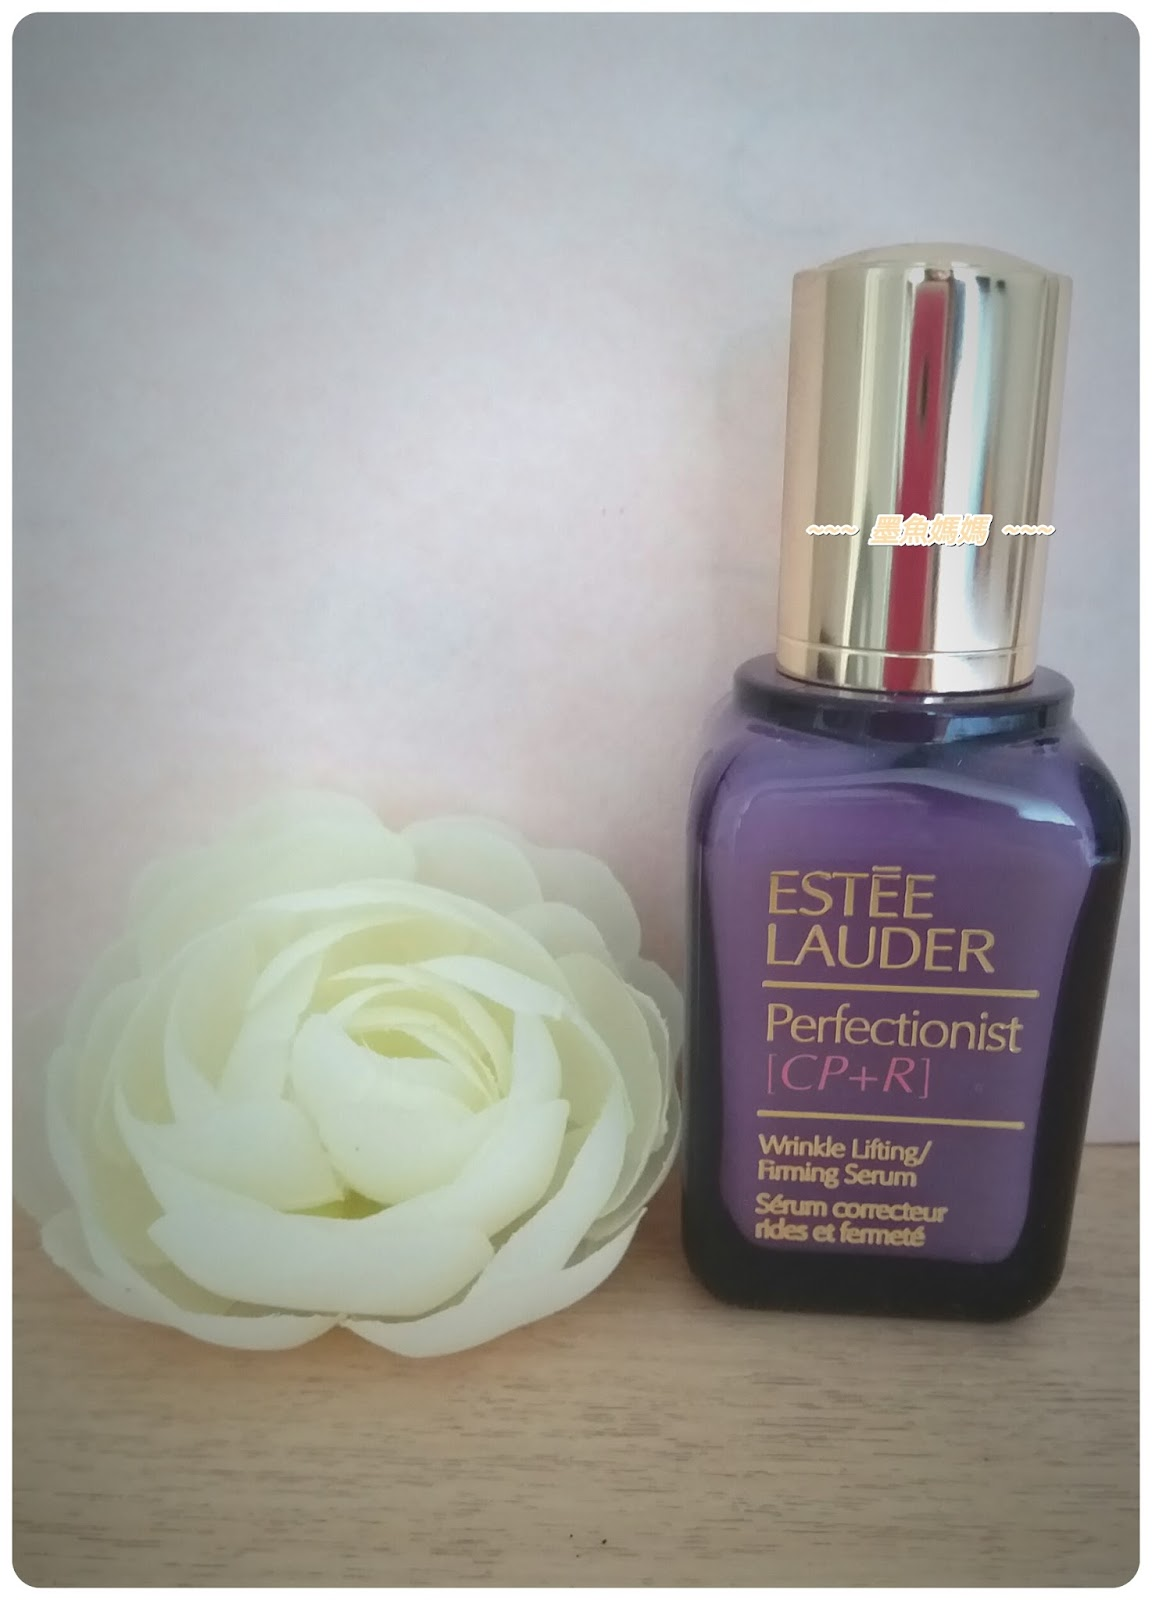 Estee Lauder Perfectionist Cp R Wrinkle Lifting Firming Serum